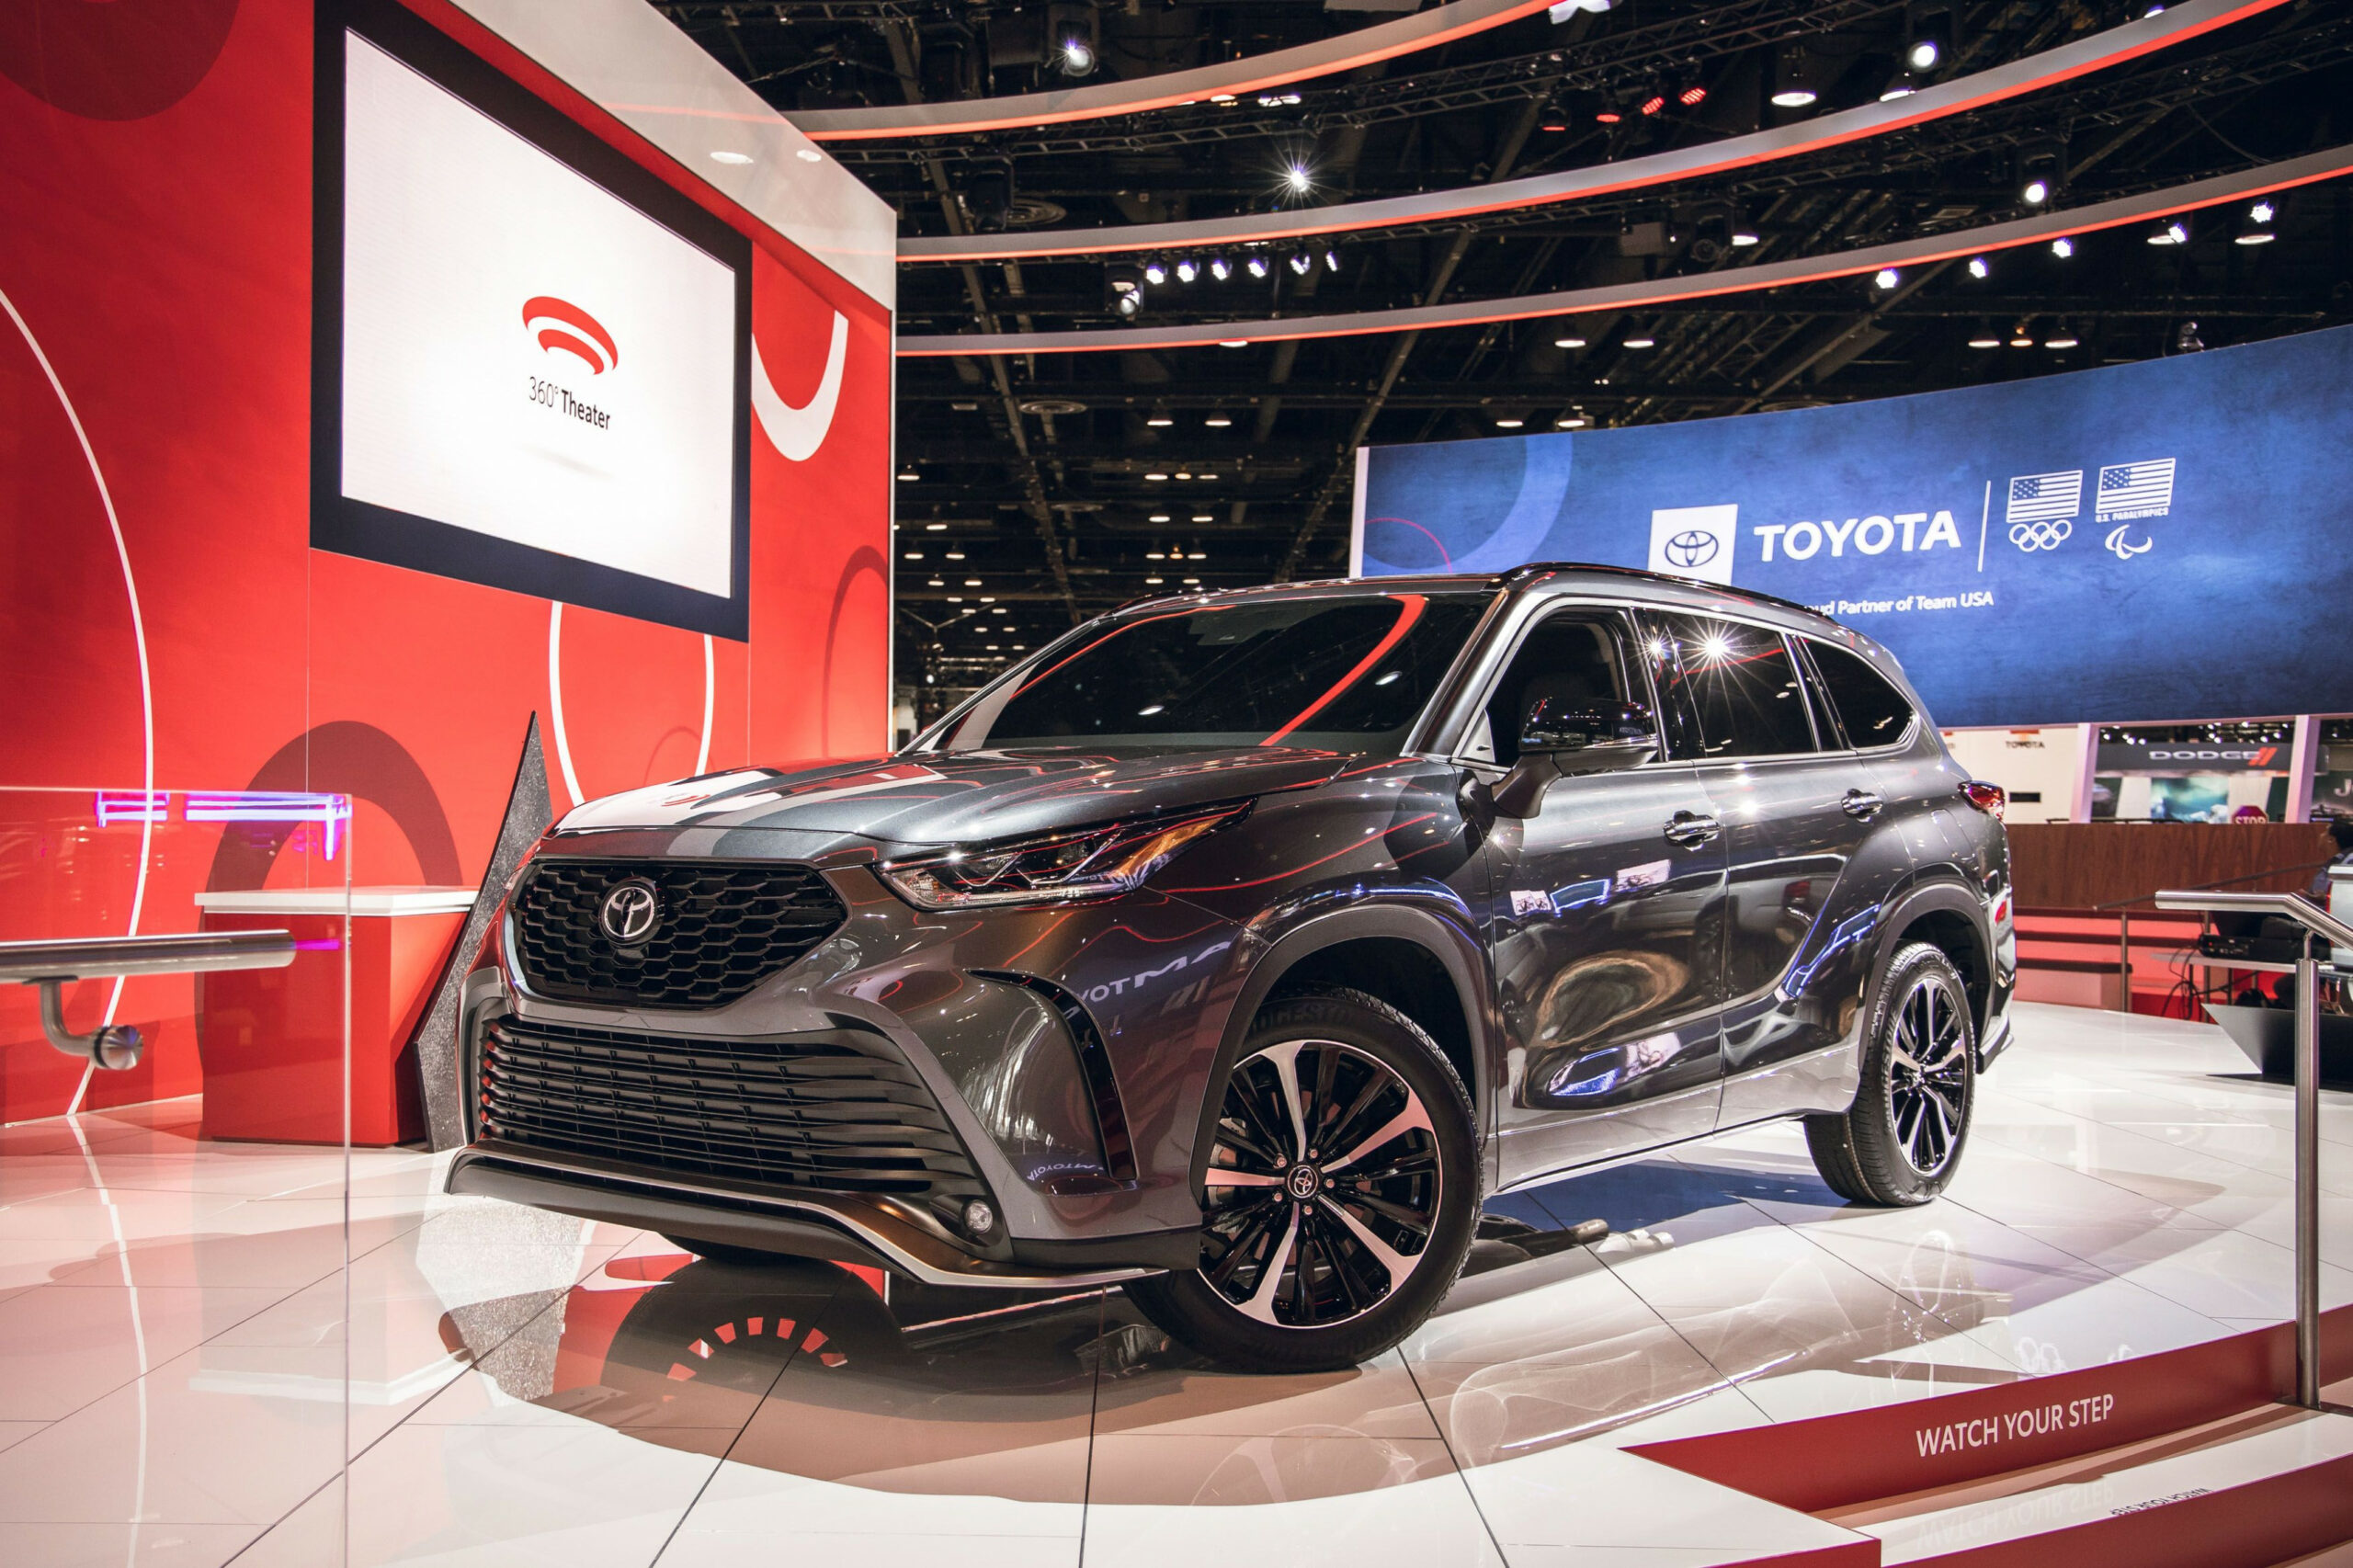 Rumors When Will 2022 Toyota Highlander Be Available